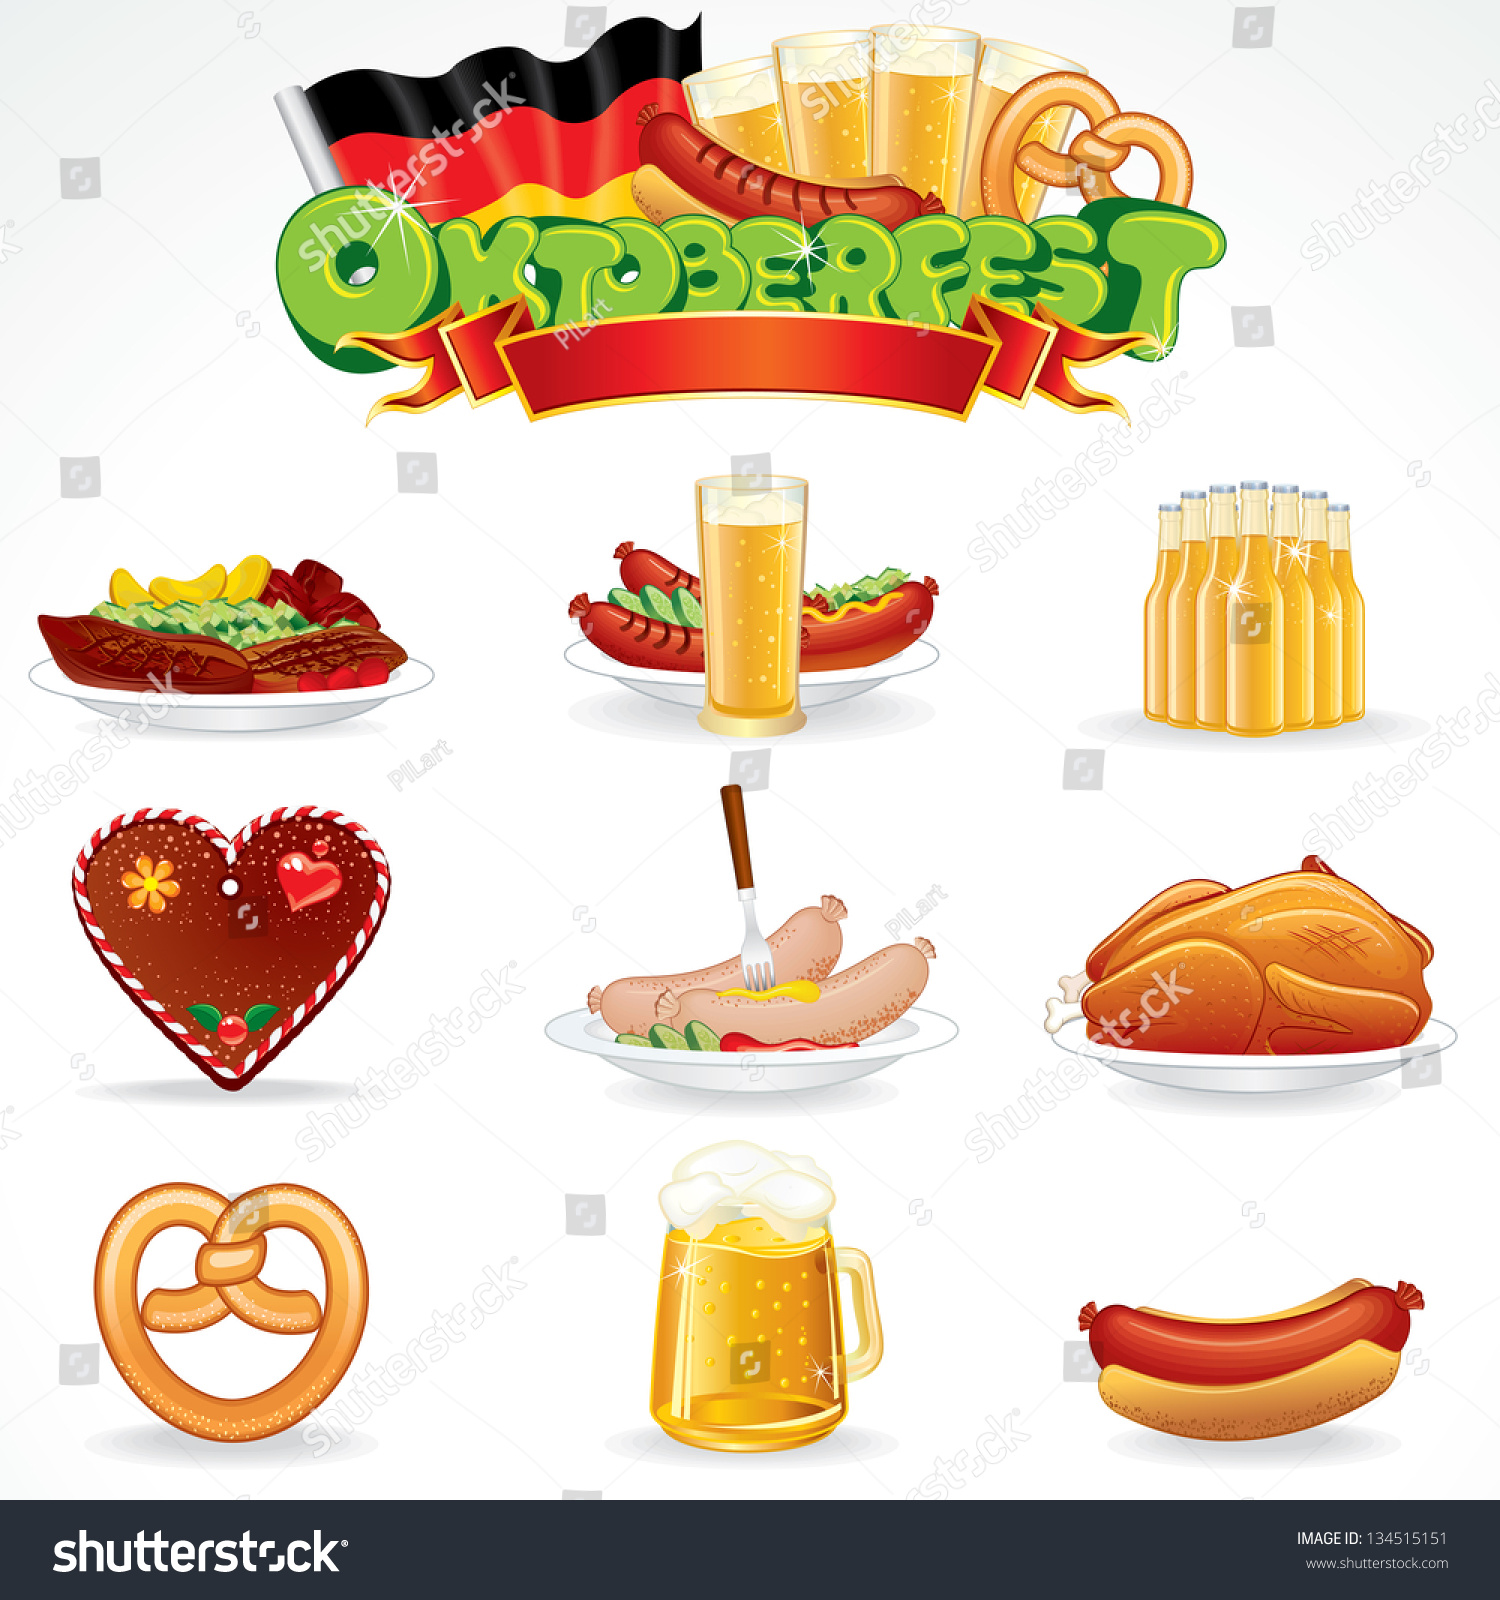 the interpretation of food and drink in art No food or drink signs facilities have manufacturing areas, office meeting rooms or general work space where eating, drinking, or smoking have no place for many reasons including odors, waste or disruptions to everyday business.